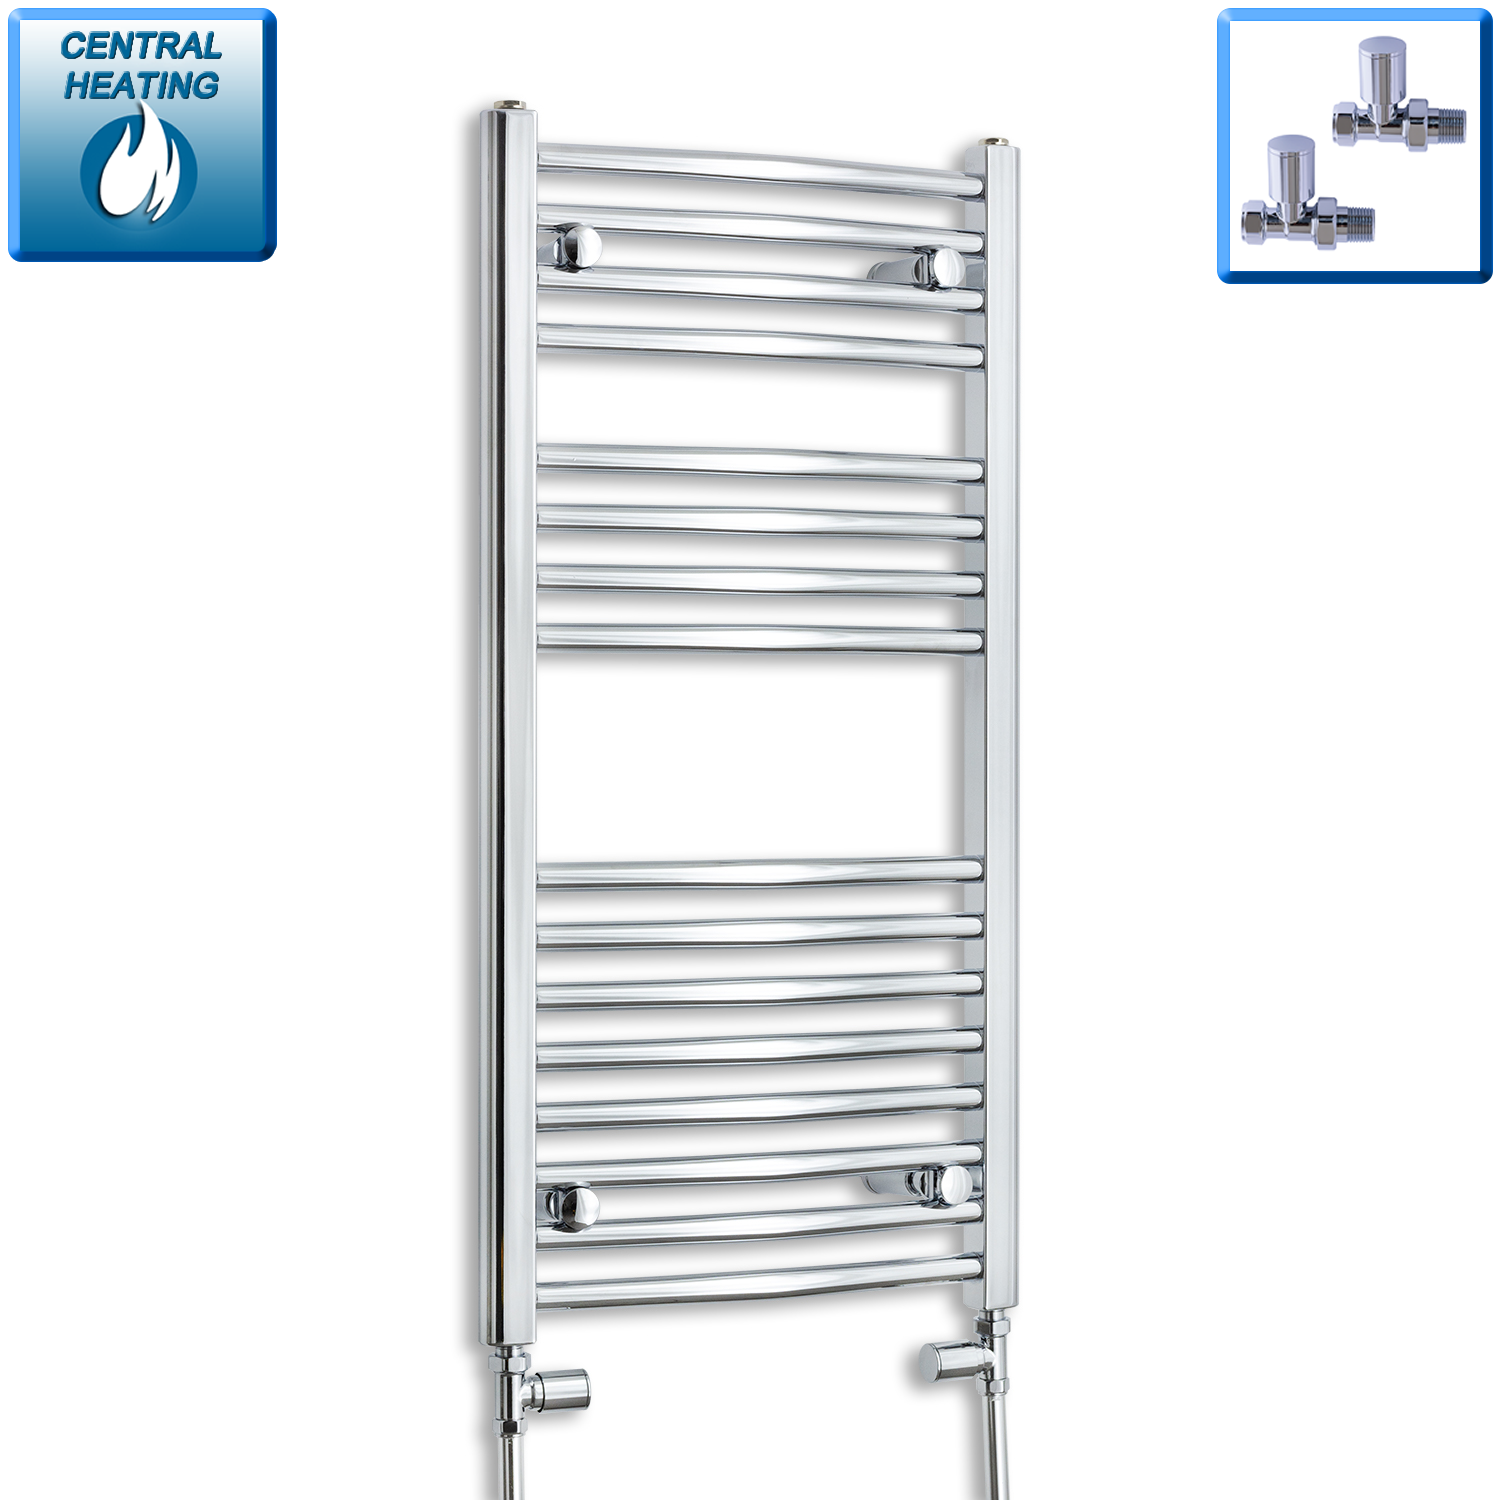 450mm Wide 900mm High Chrome Towel Rail Radiator With Straight Valve